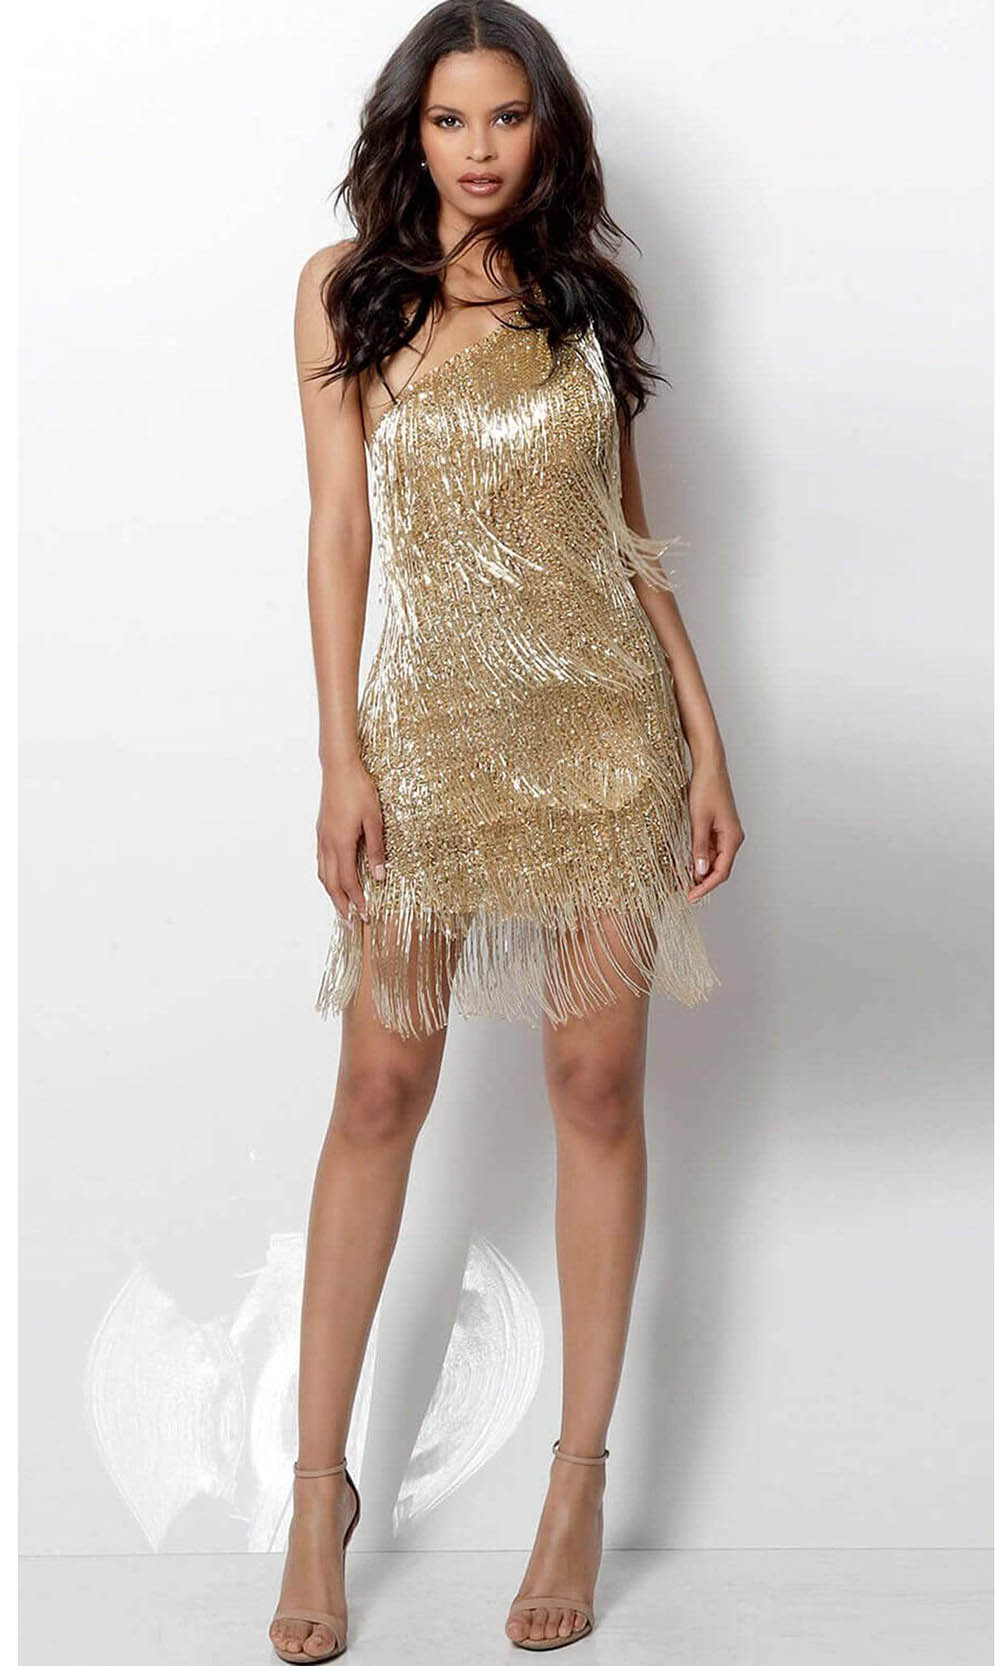 Jovani - 616841 Beaded Fringe One Shoulder Sheath Dress Special Occasion Dress 00 / Gold